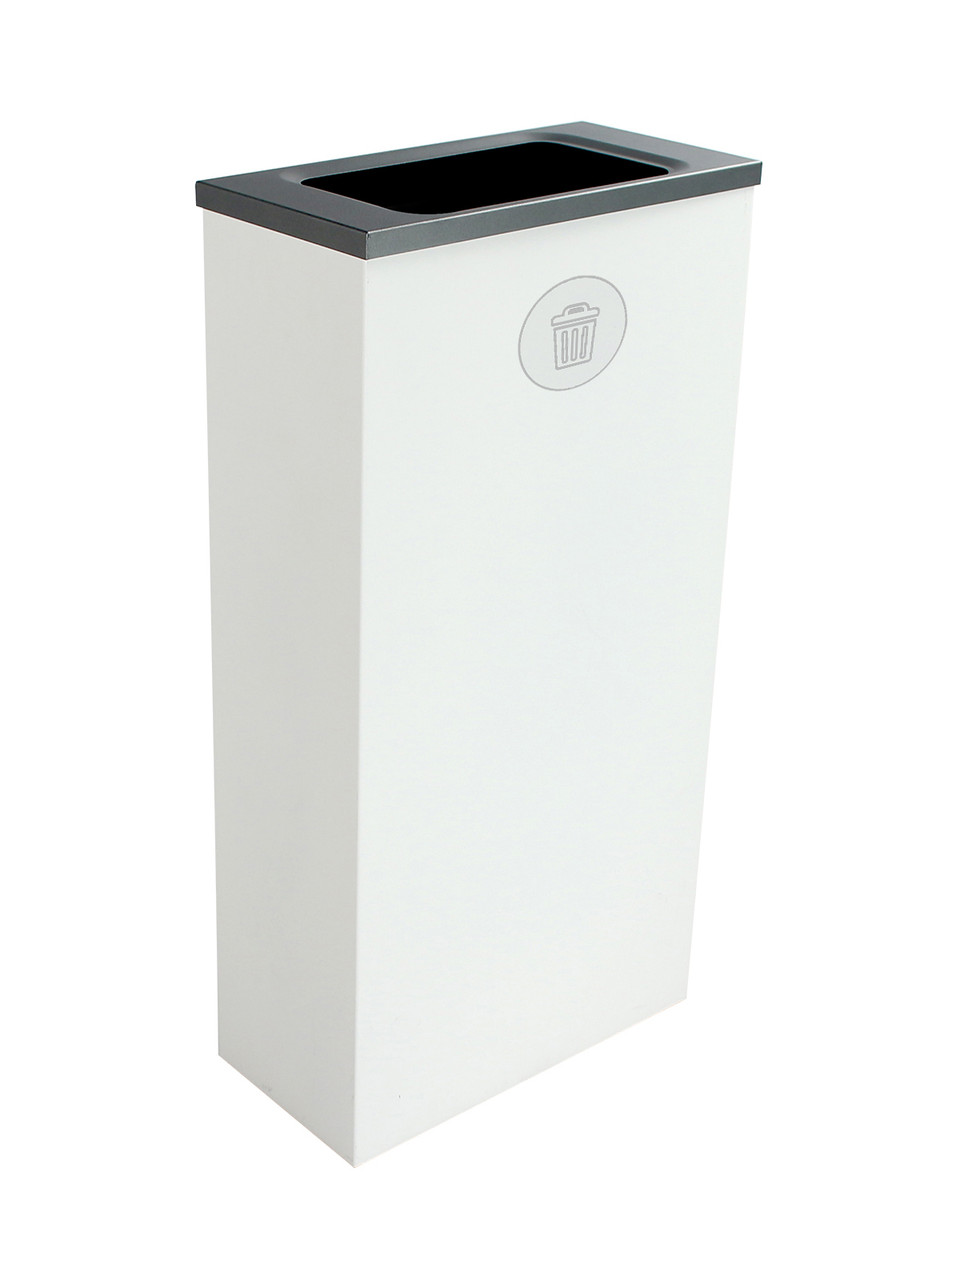 10 Gallon Steel Spectrum Slim Trash Can White 8107069-4